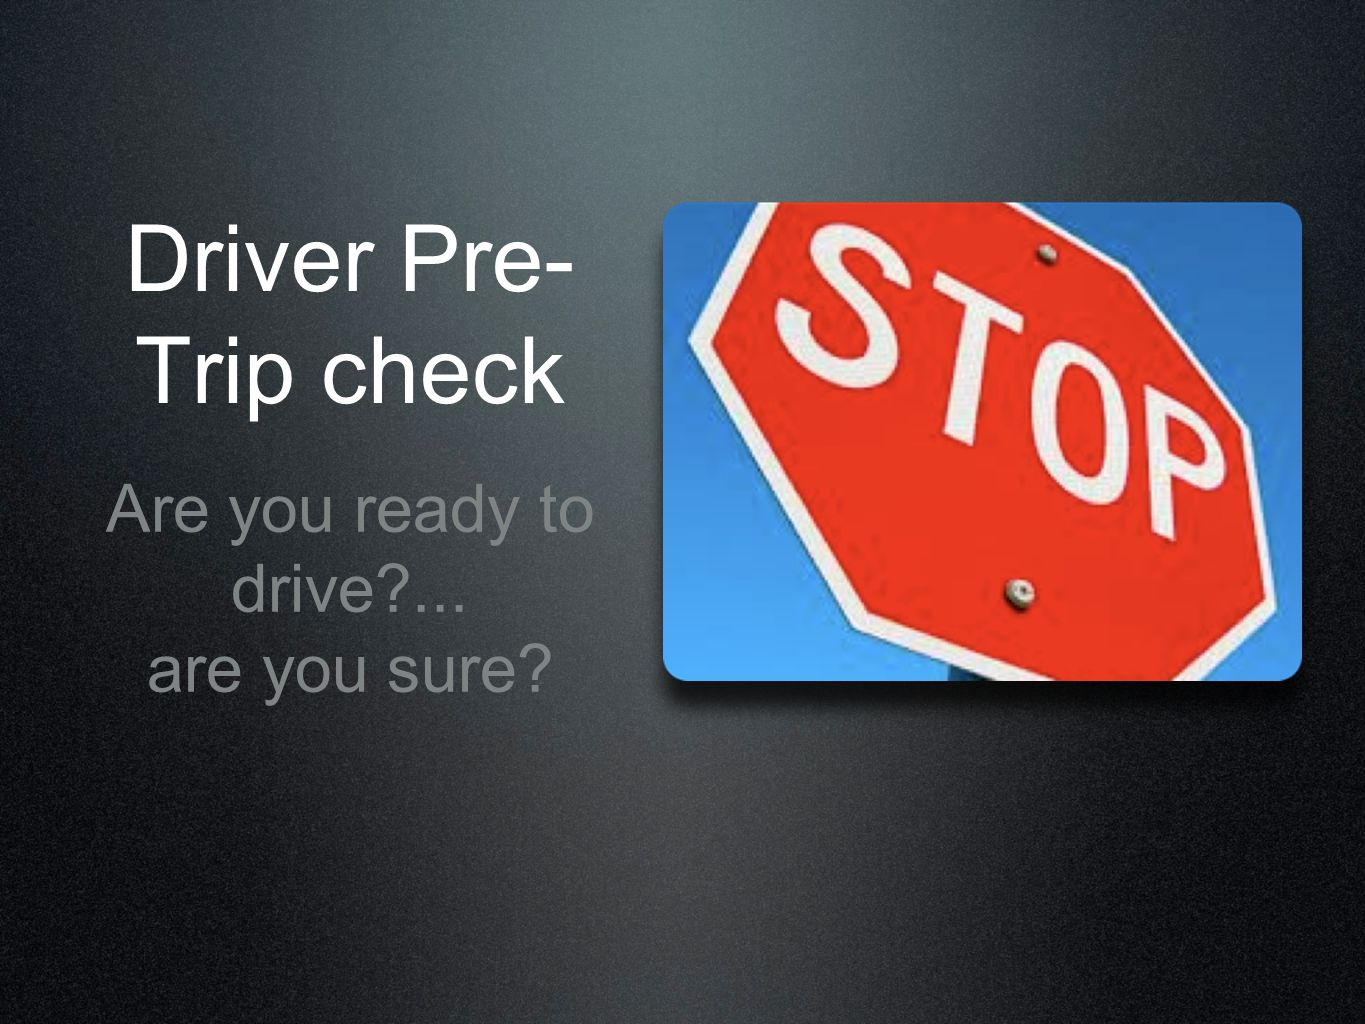 Driver Pre- Trip check Are you ready to drive?... are you sure?